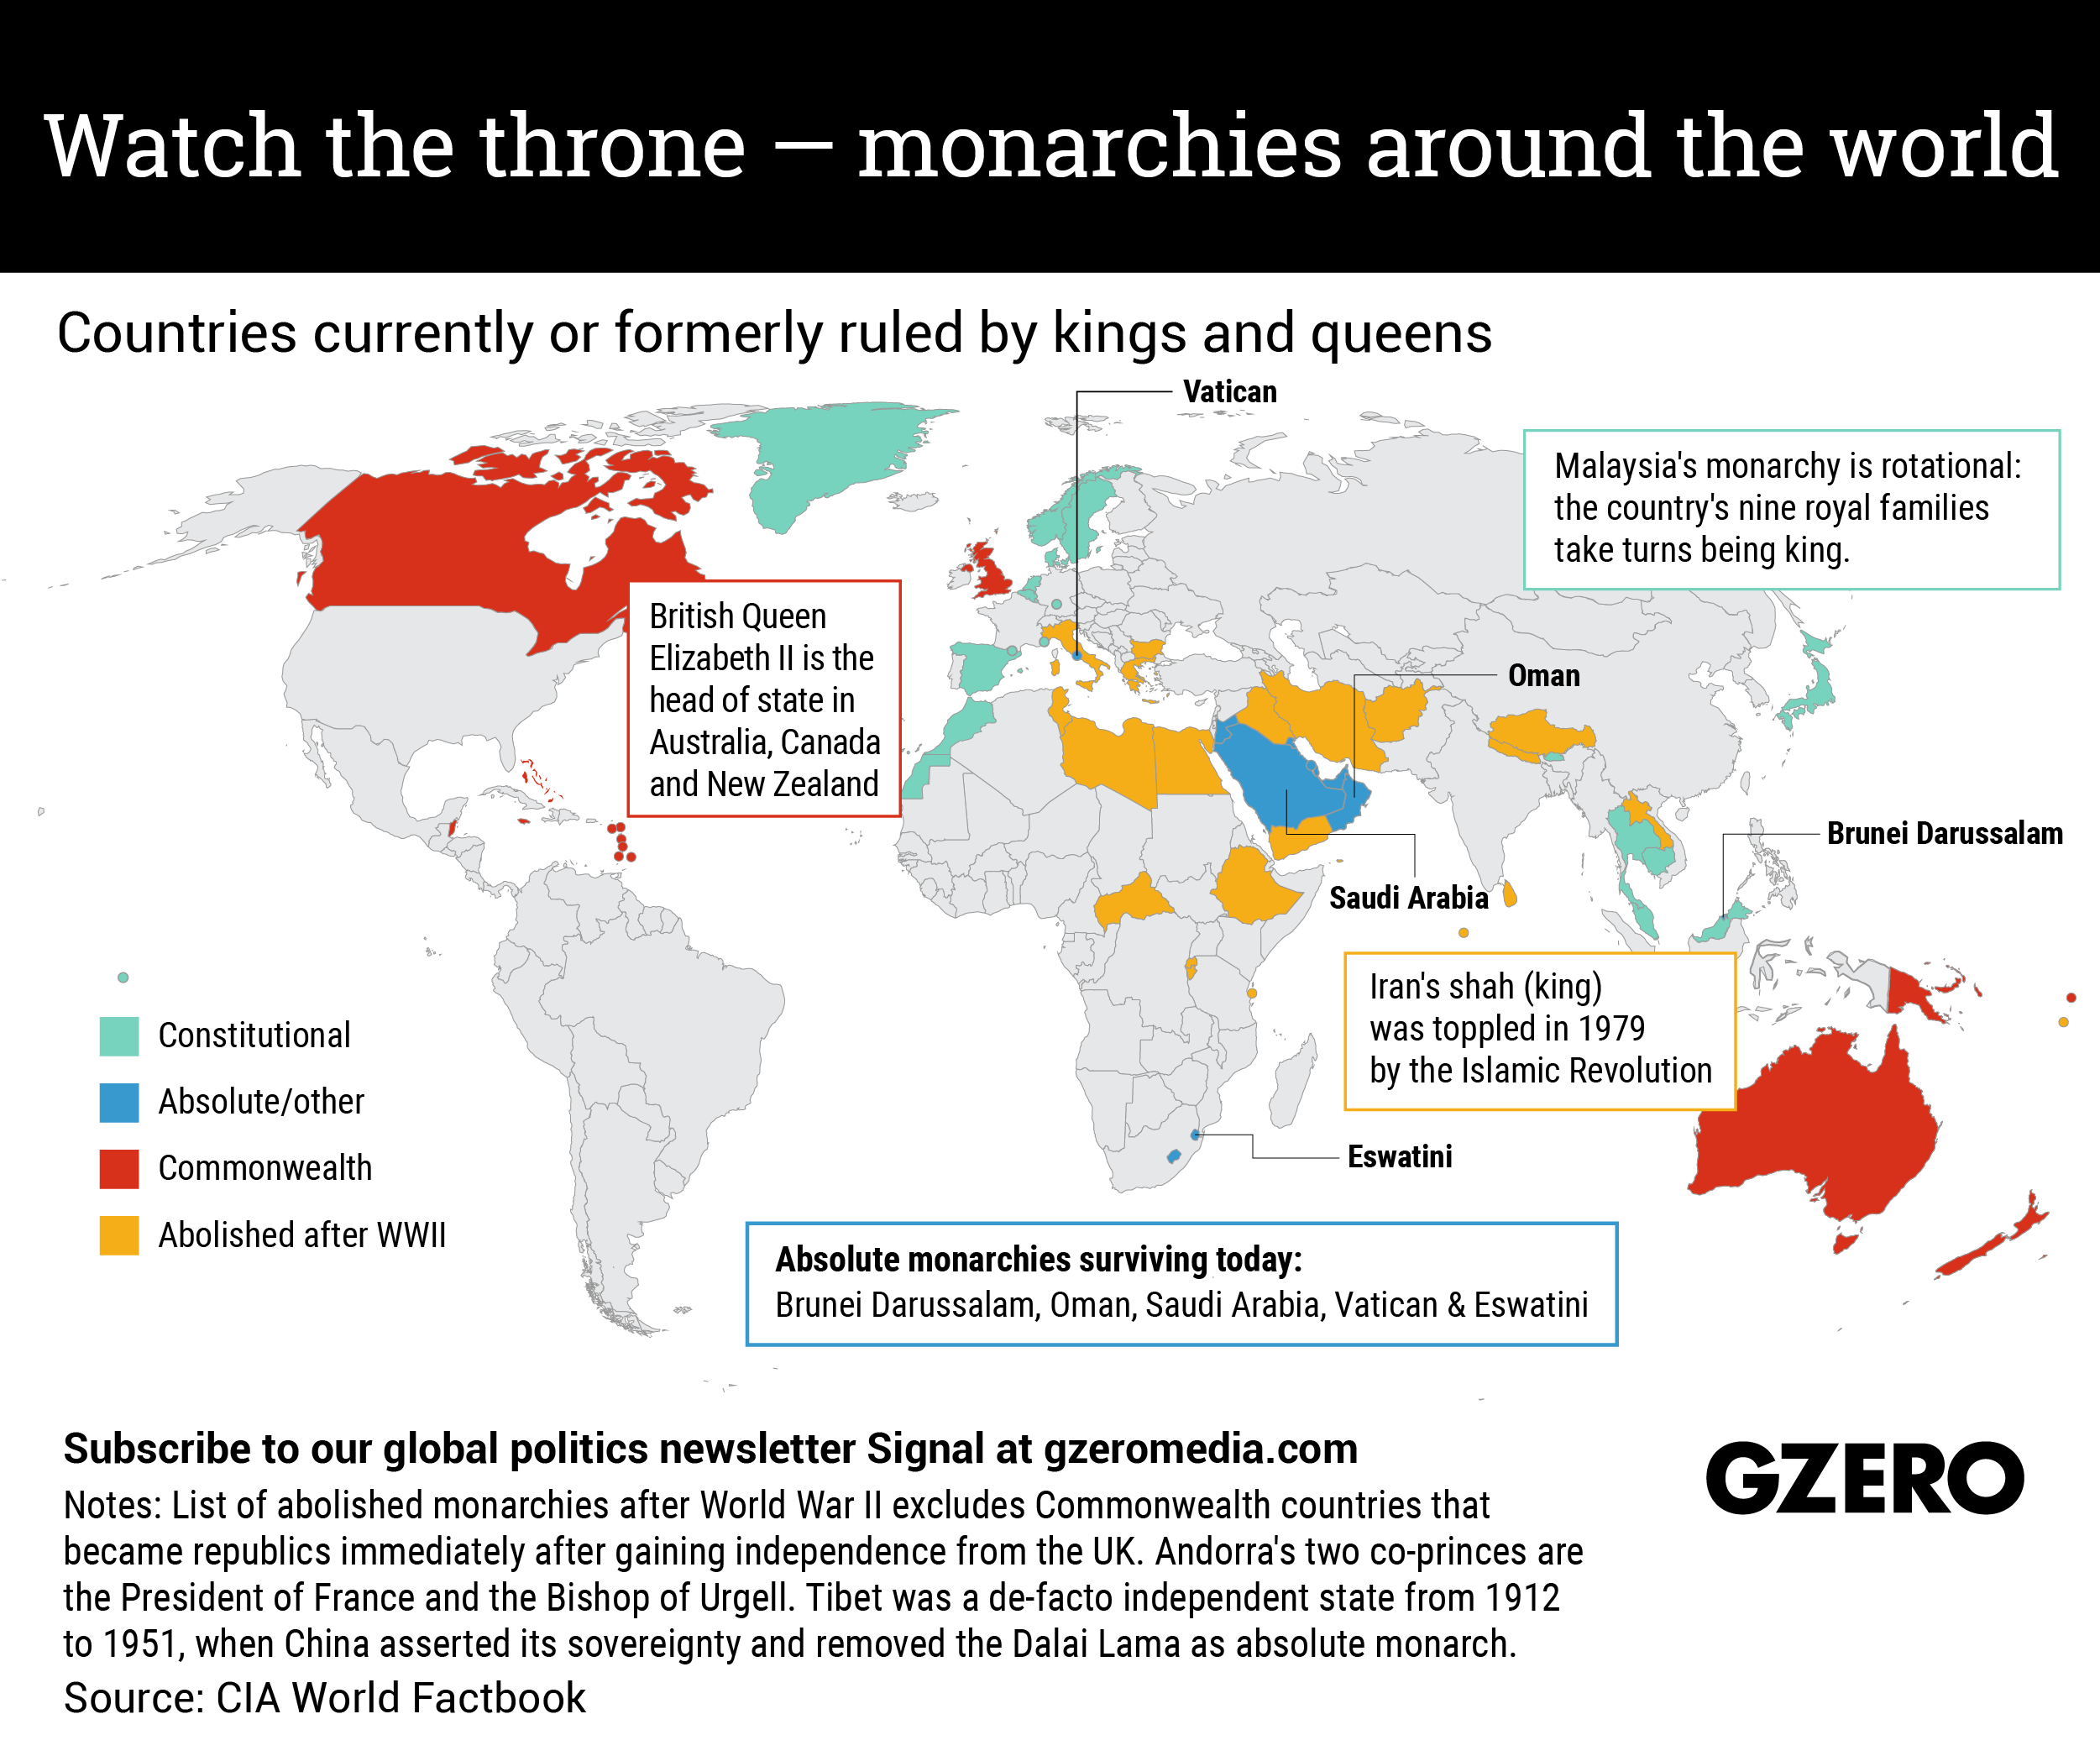 Graphic truth: Watch the throne — monarchies around the world